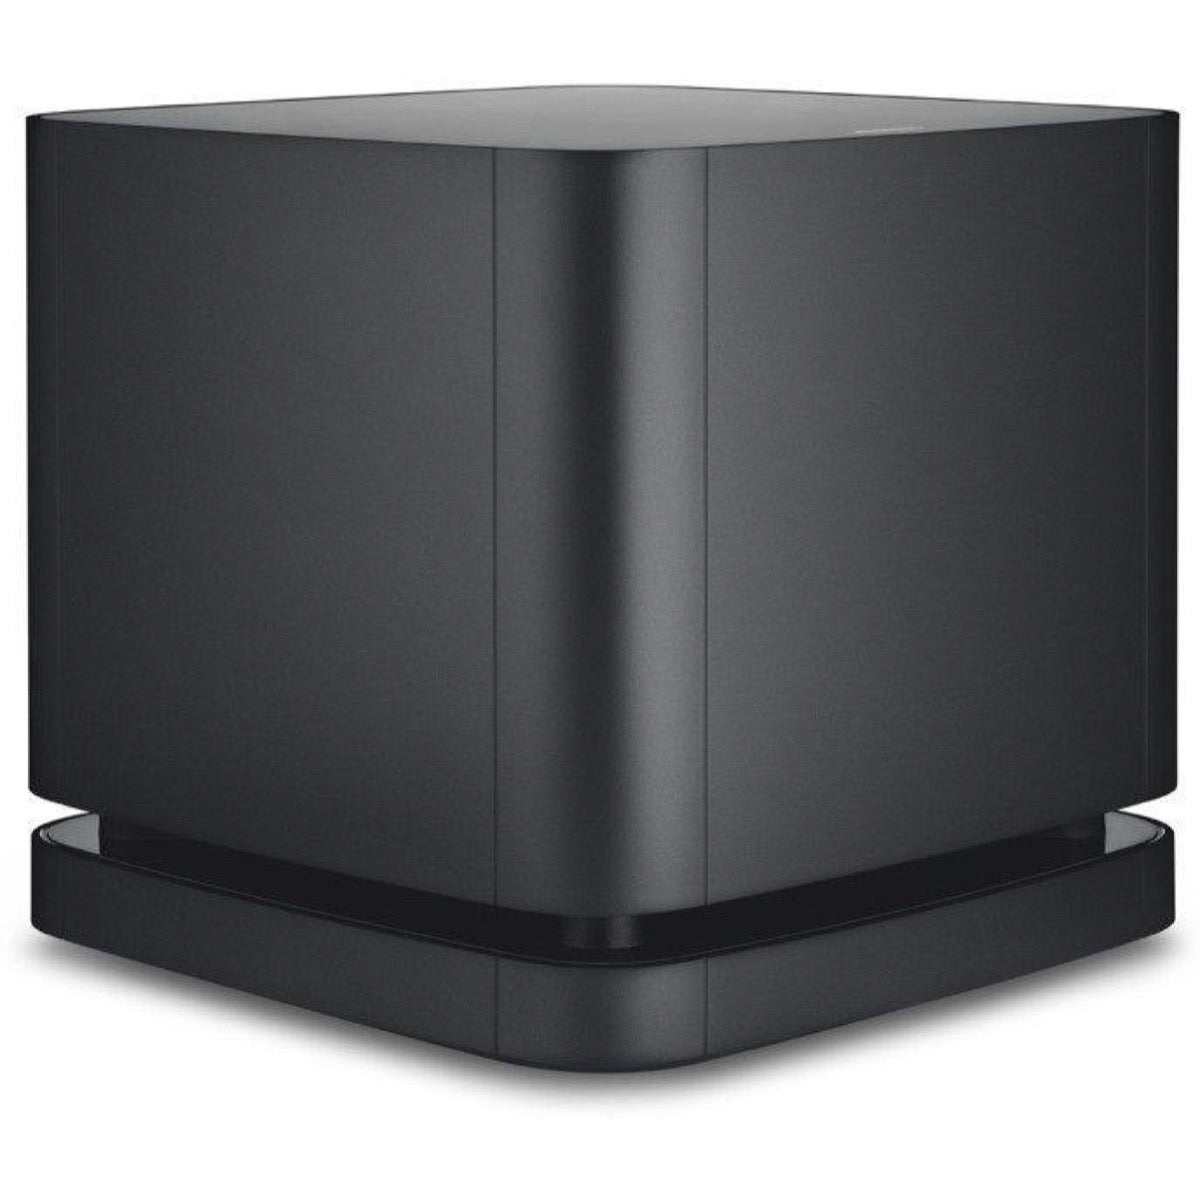 Bose Bass Module 500 Wireless Home Theater Subwoofer